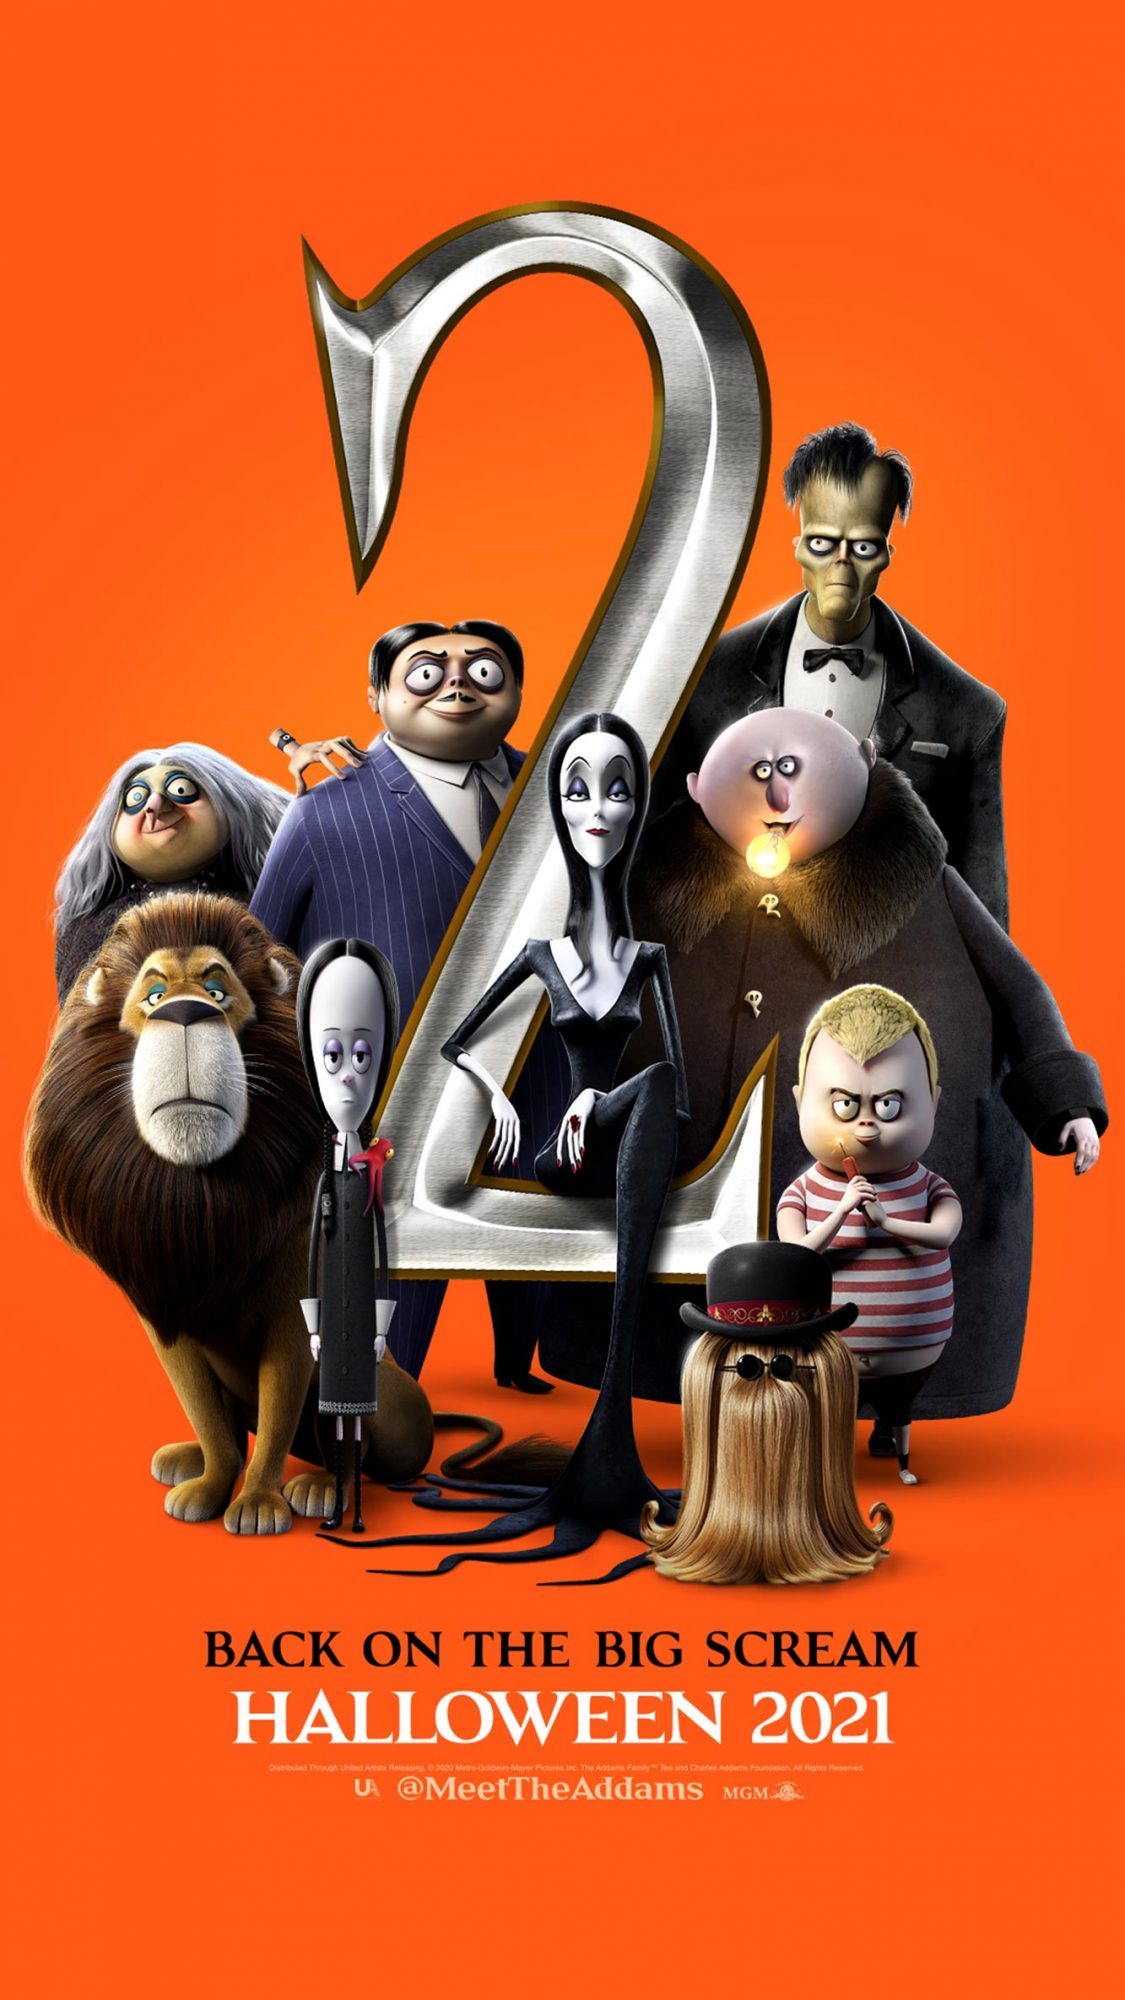 The Addams Family 2 (2021) - 5.1 Up-Mix Trailer - The Digital Theater